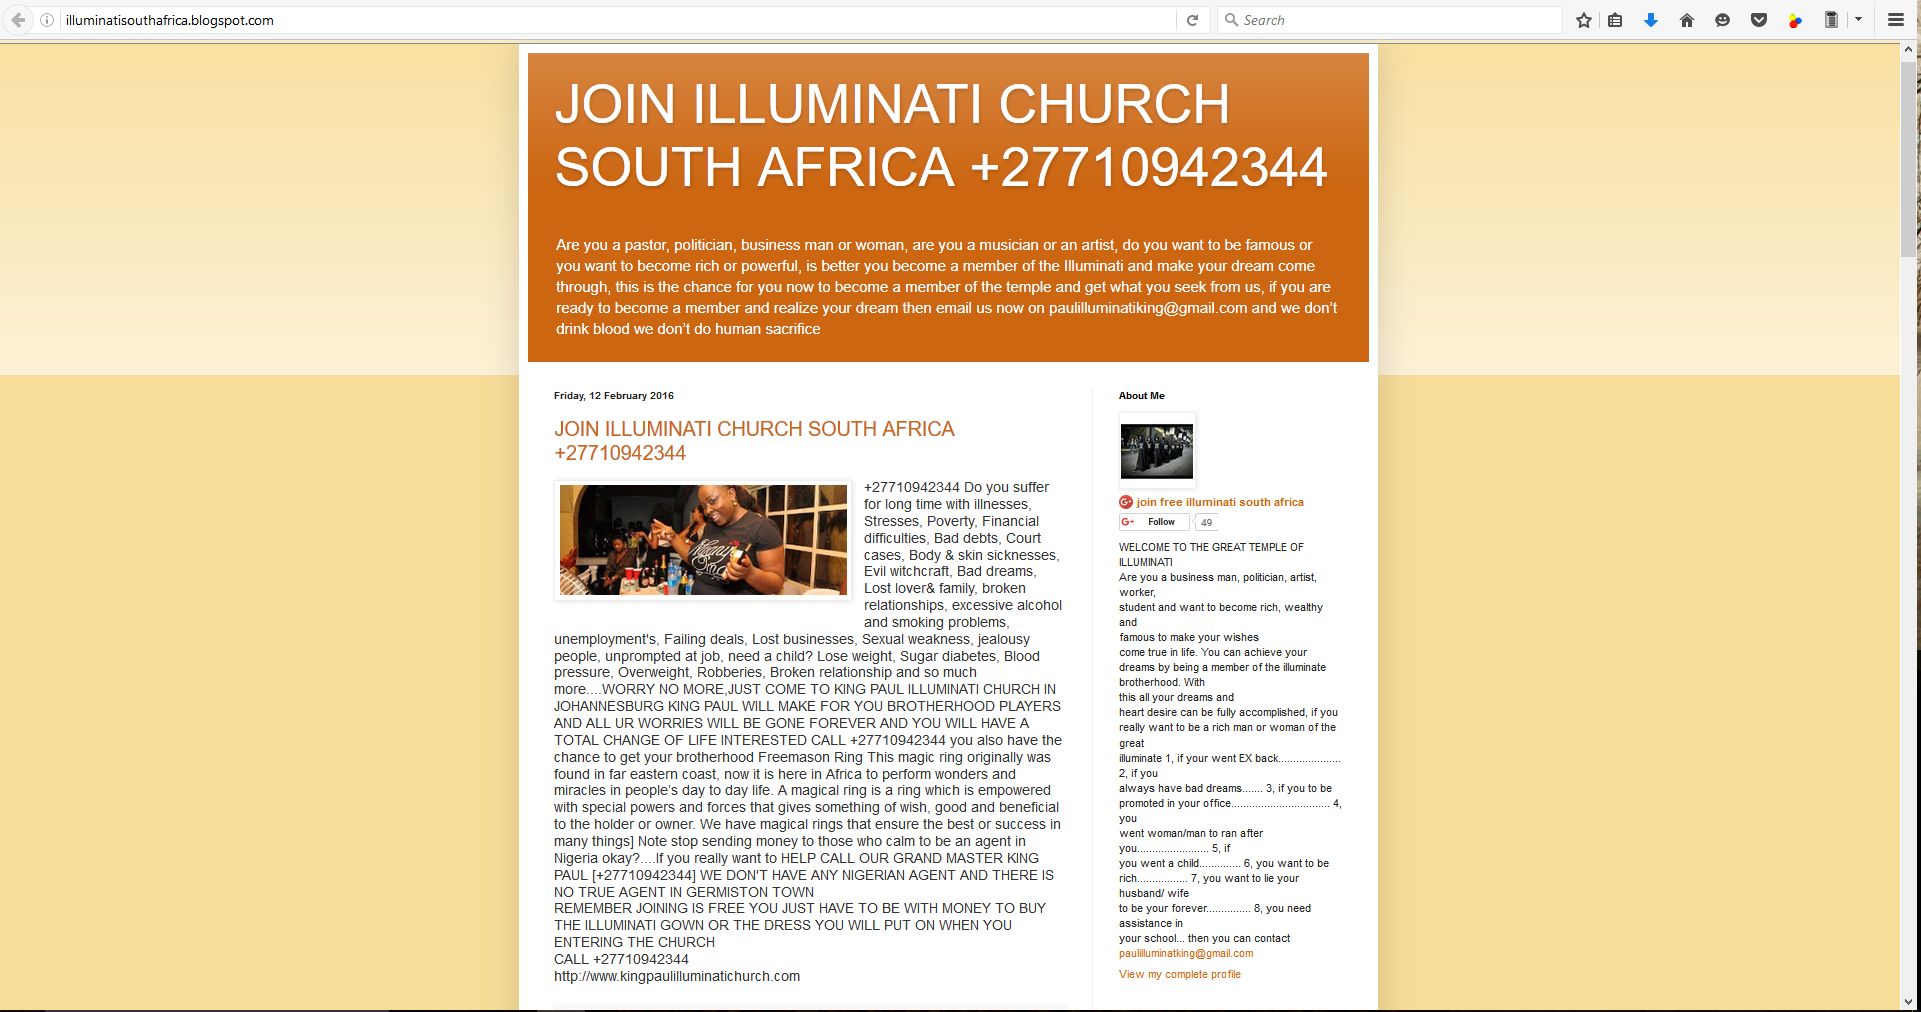 How to join the Illuminati Church